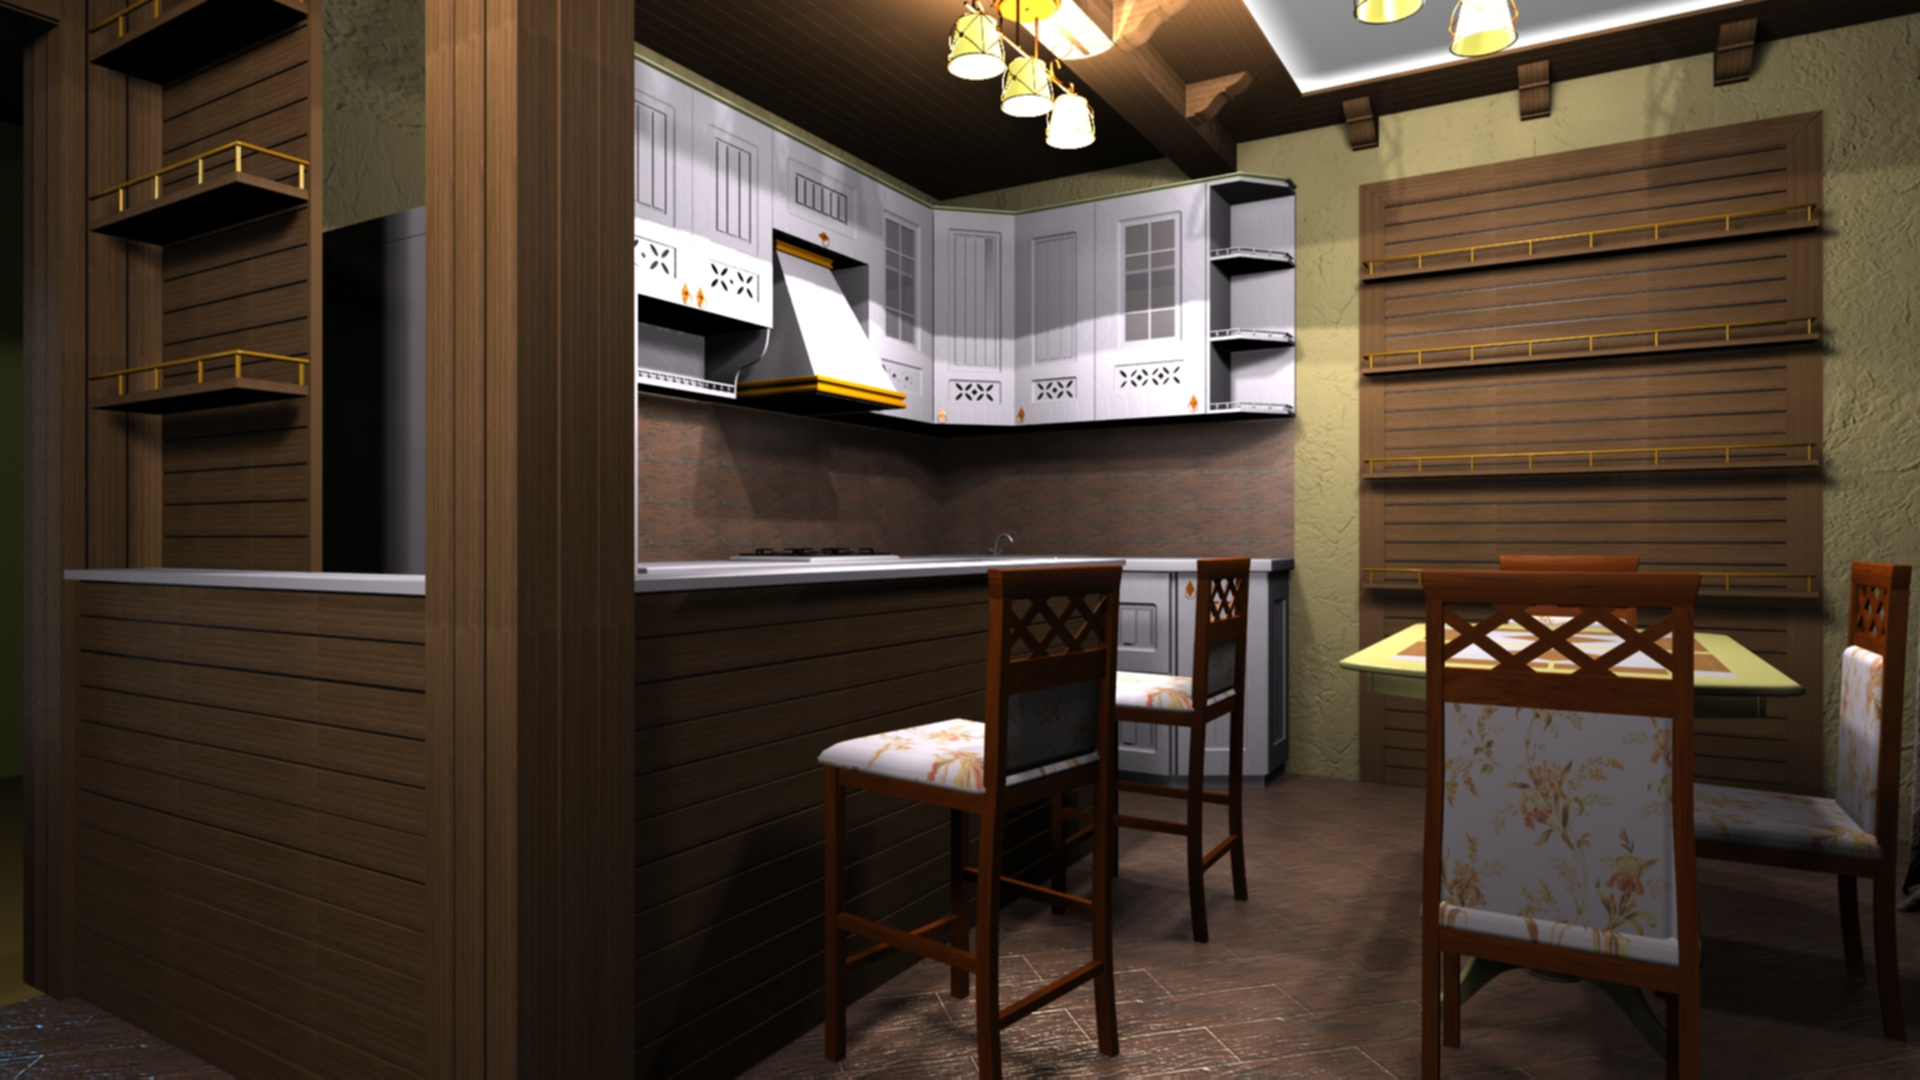 Kitchen-dining room in 3d max vray 2.0 image